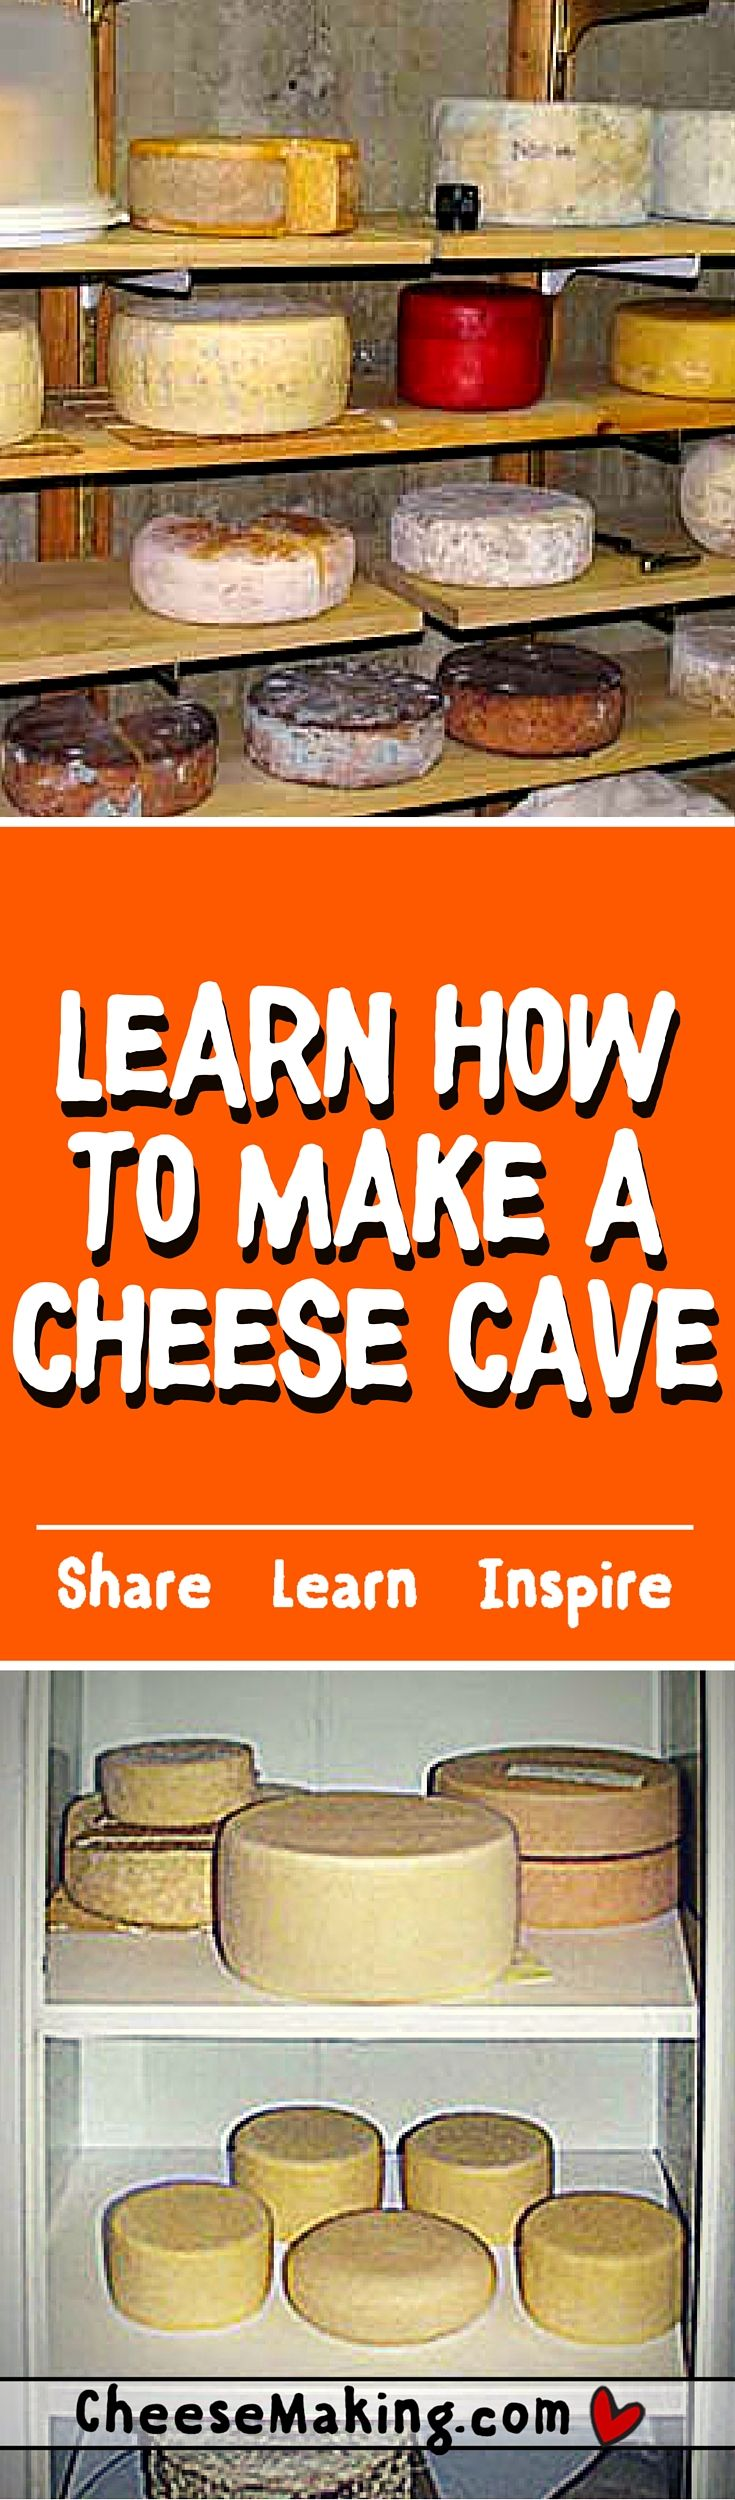 Learn how to make a cheese 'cave' right at home. If you want your cheese to ripen properly you have to make them a good home and take care of them like little bambinos.